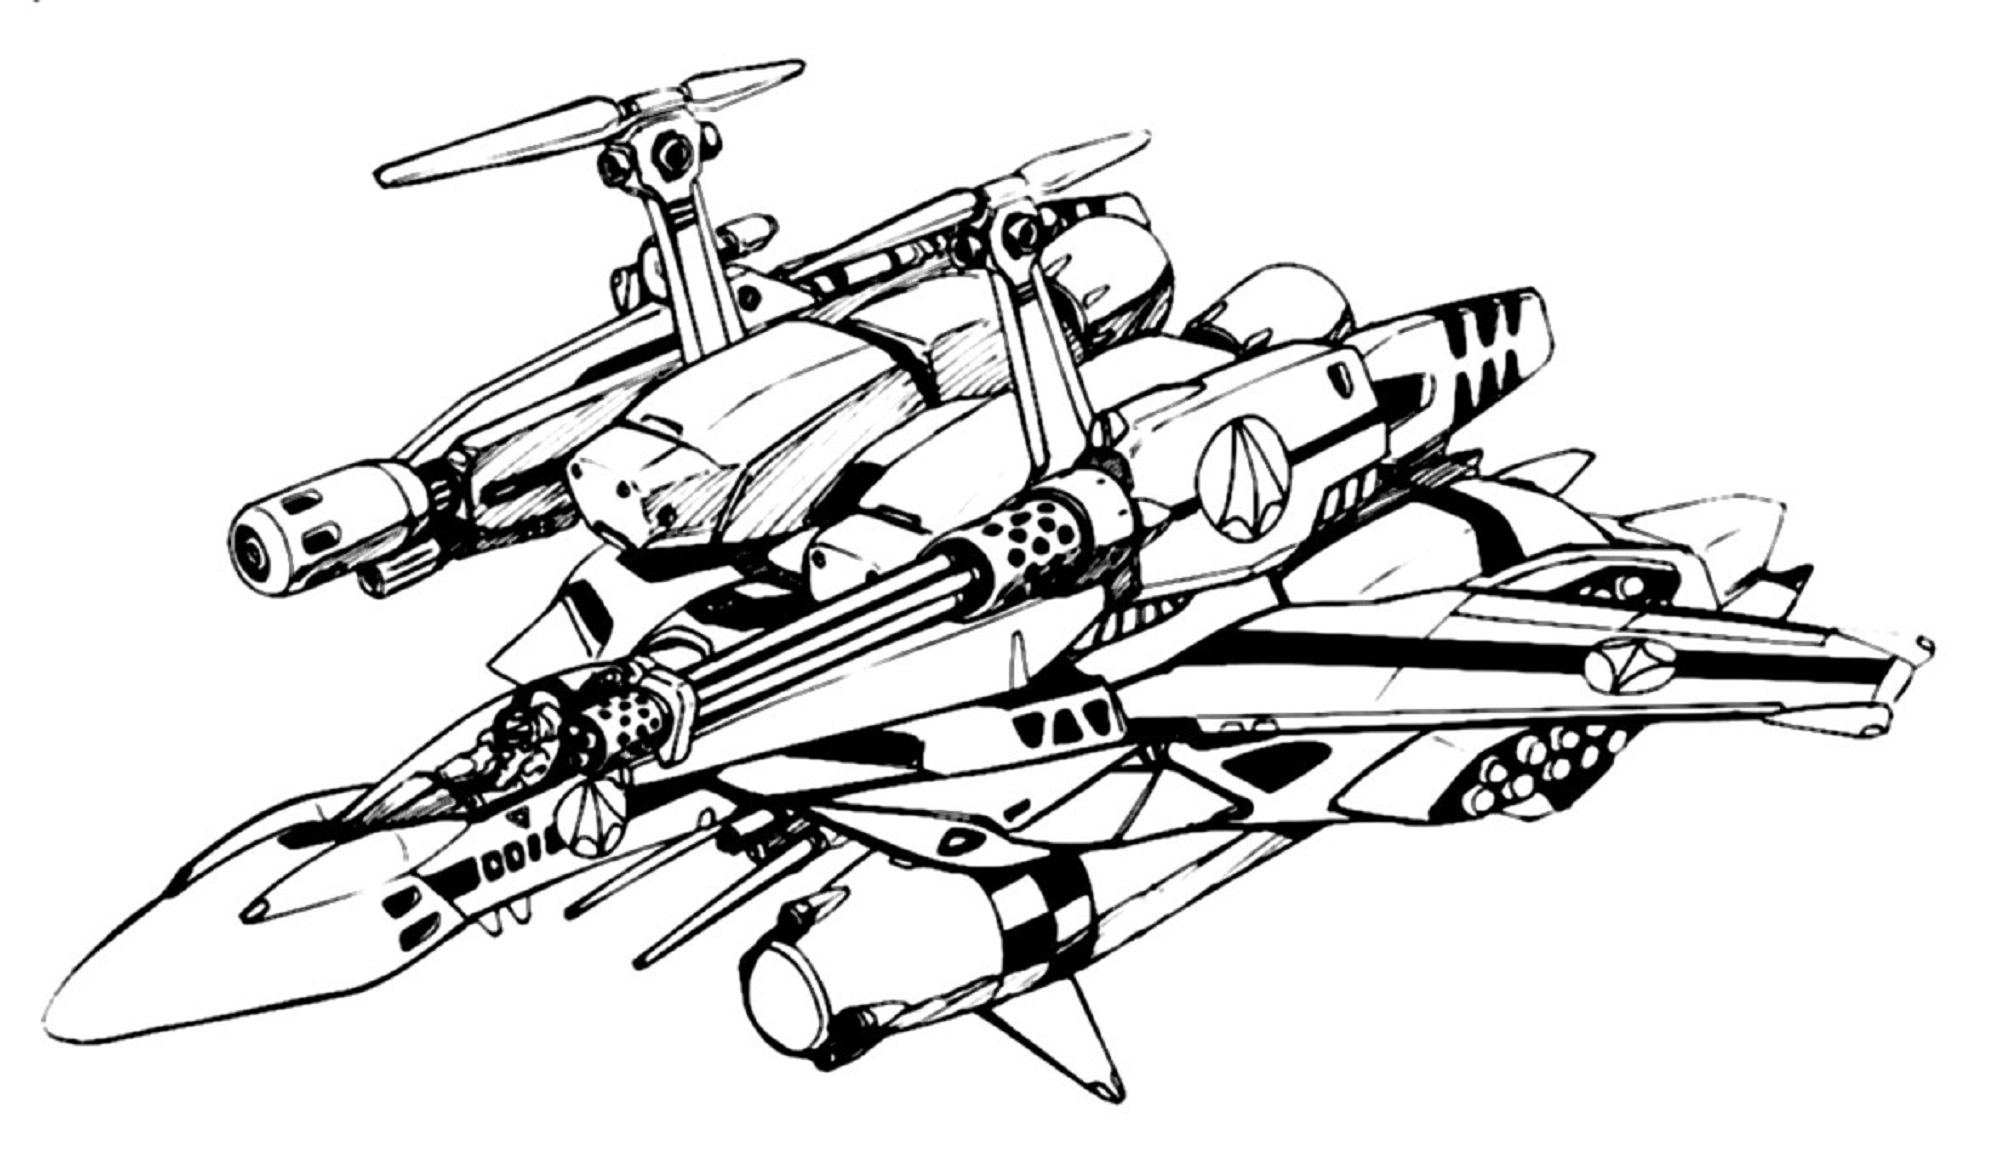 SDP-1A Stampede Fighter 1